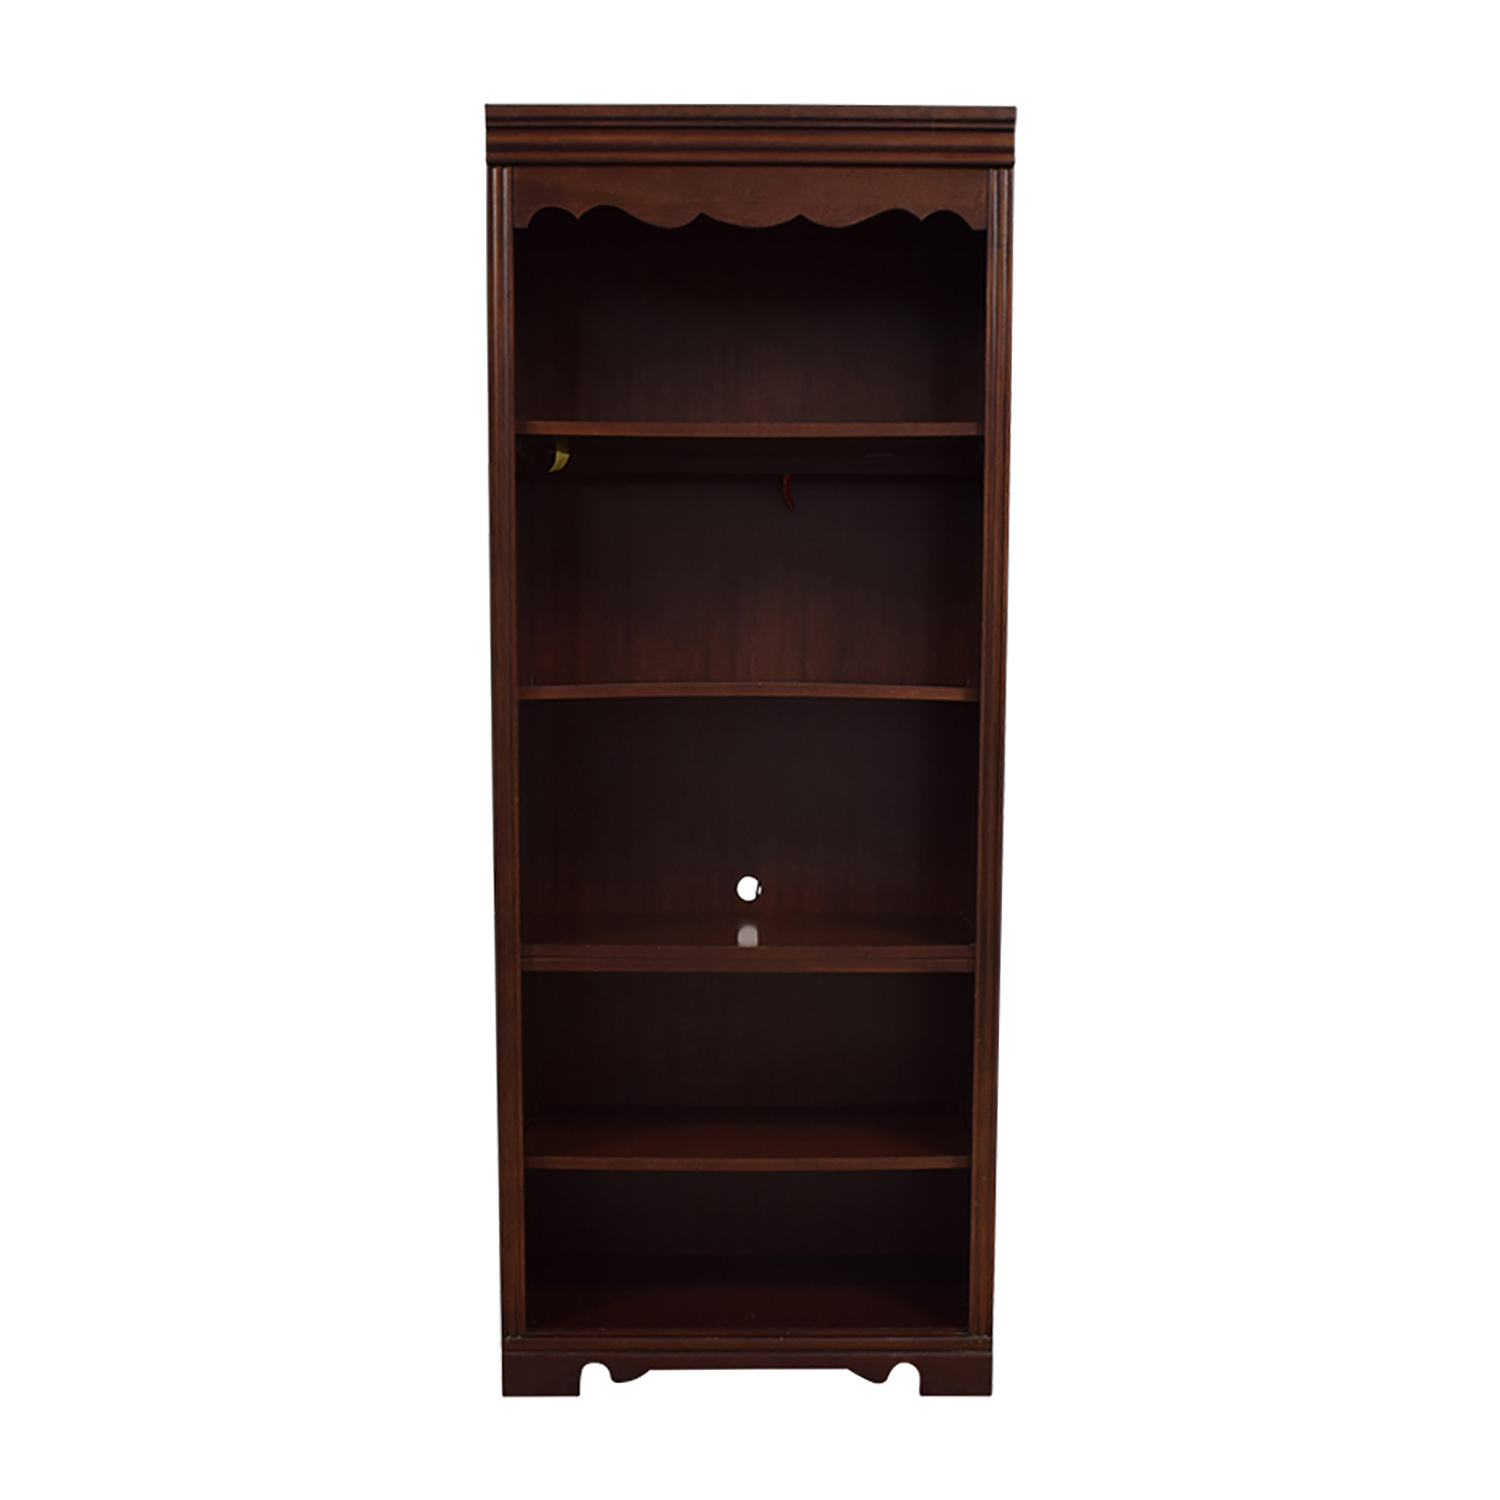 Bookcases Amp Shelving Used Bookcases Amp Shelving For Sale